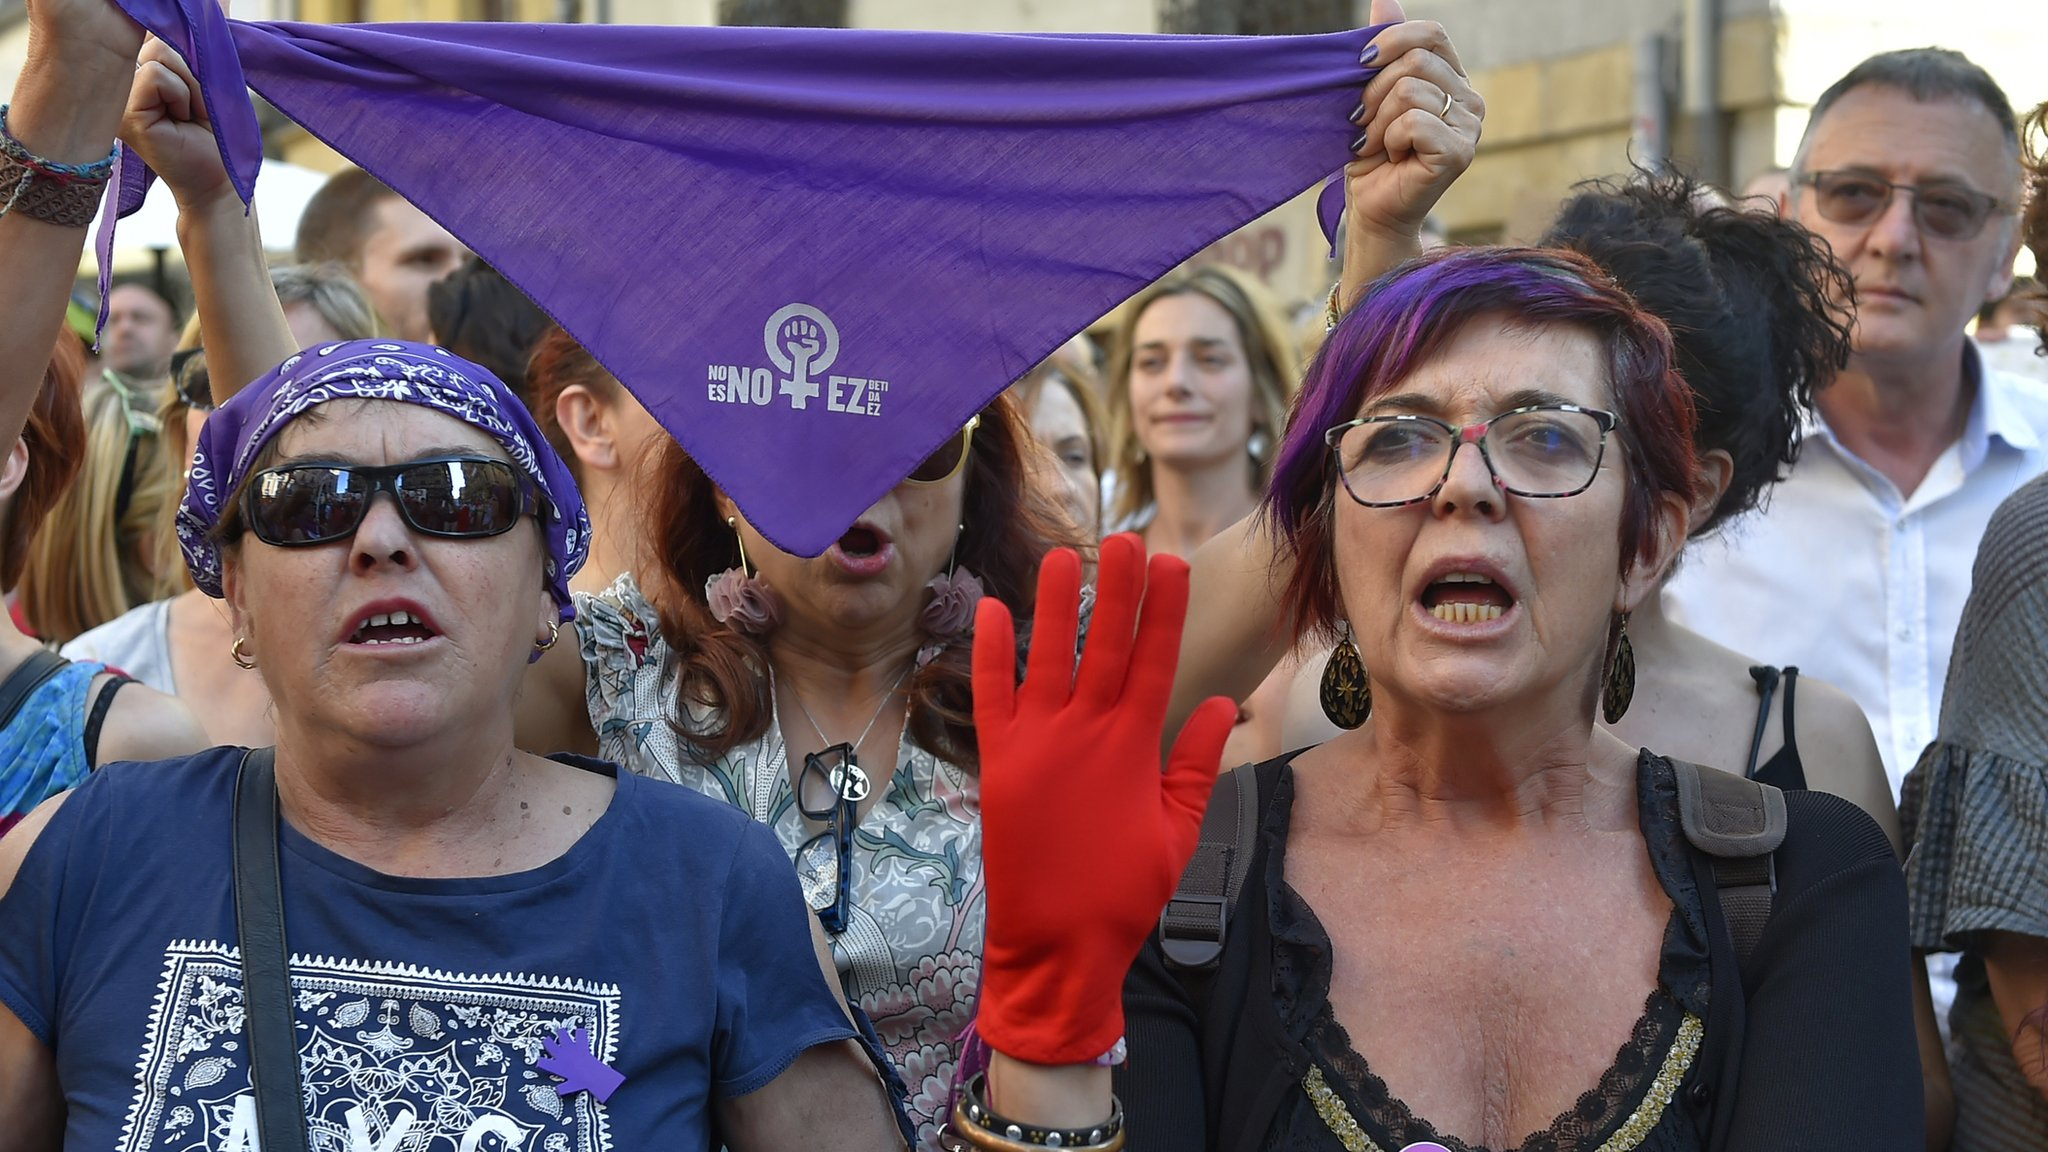 Demonstrators (mostly women) protest, one of them wearing a red glove in Pamplona (June 21, 2018)